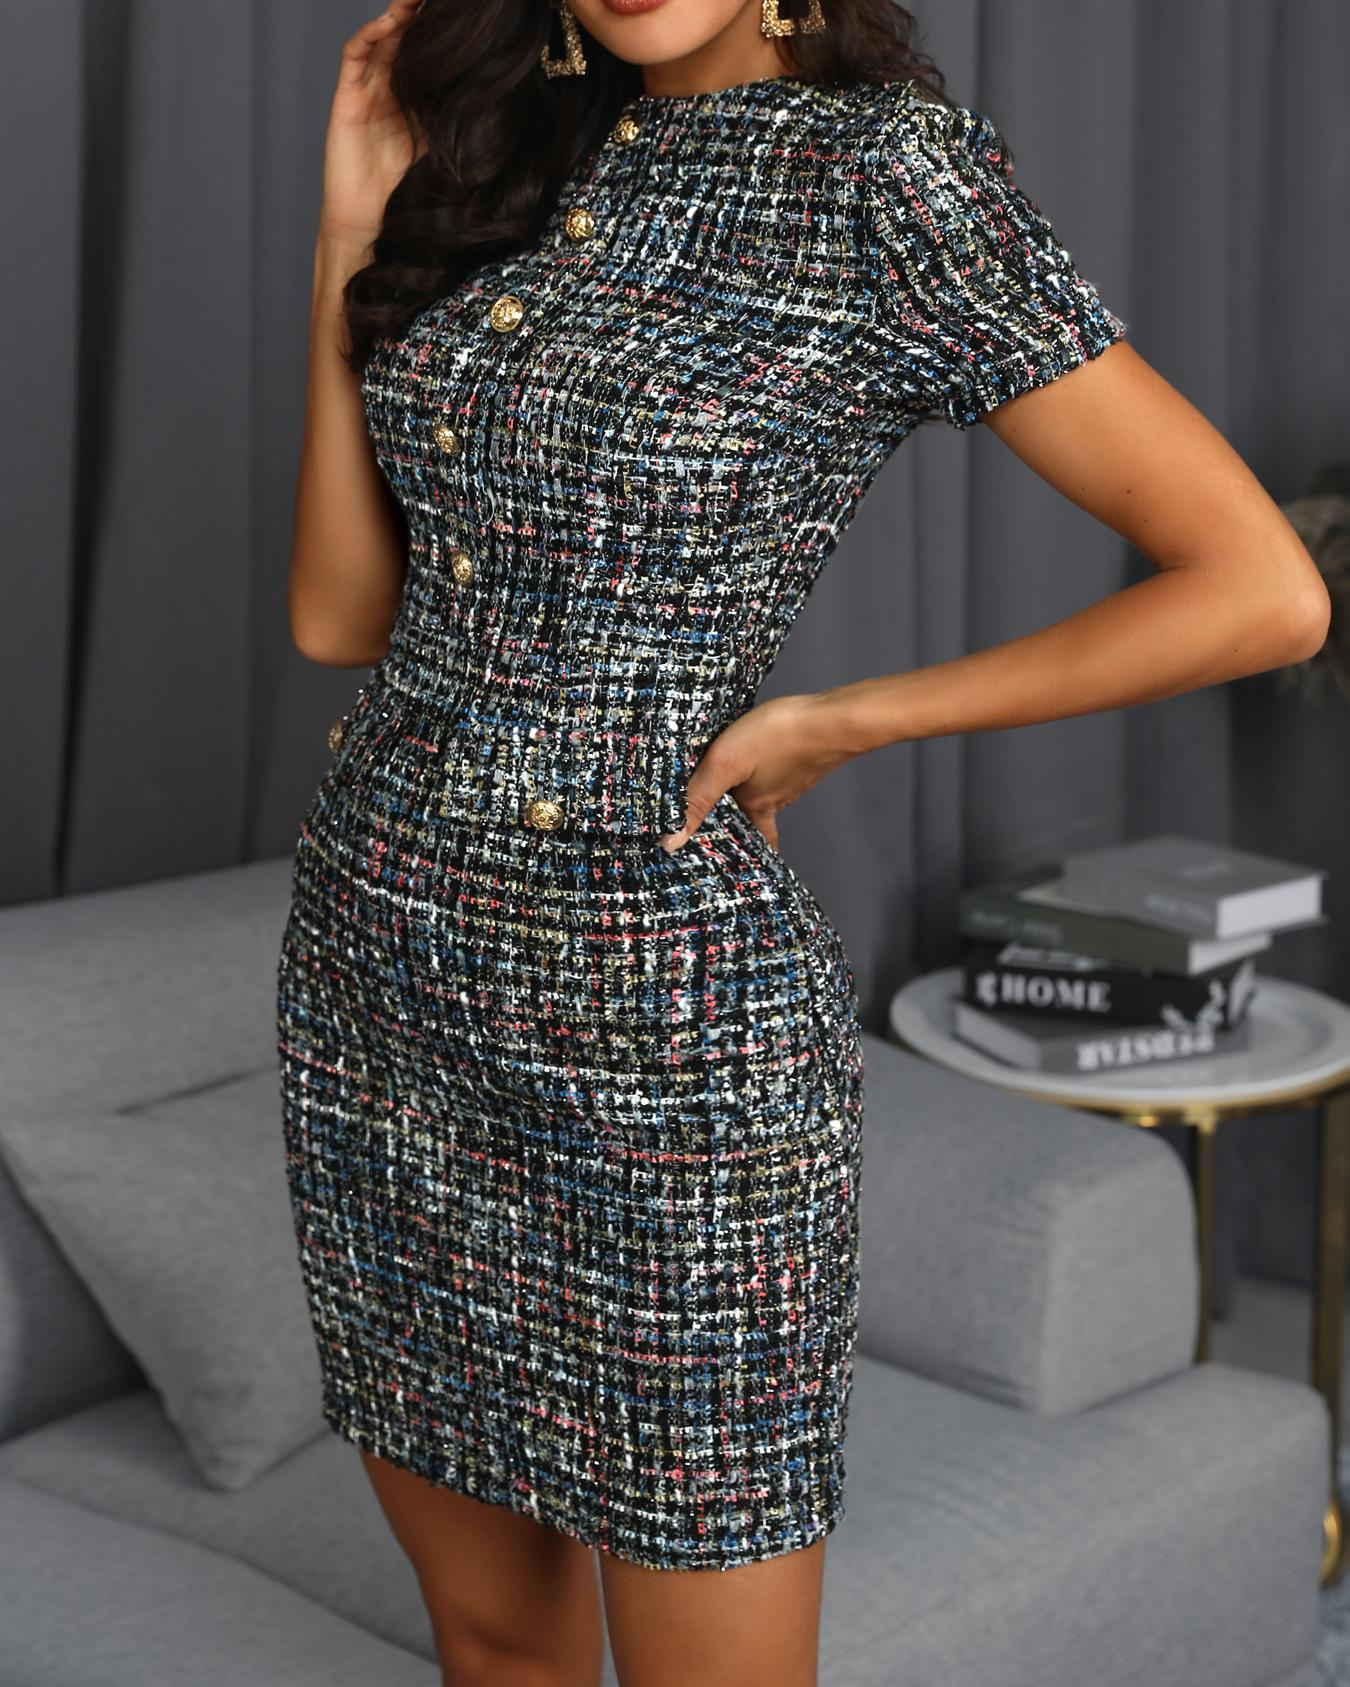 joyshoetique / Short Sleeve Buttoned Tweed Shift Dress